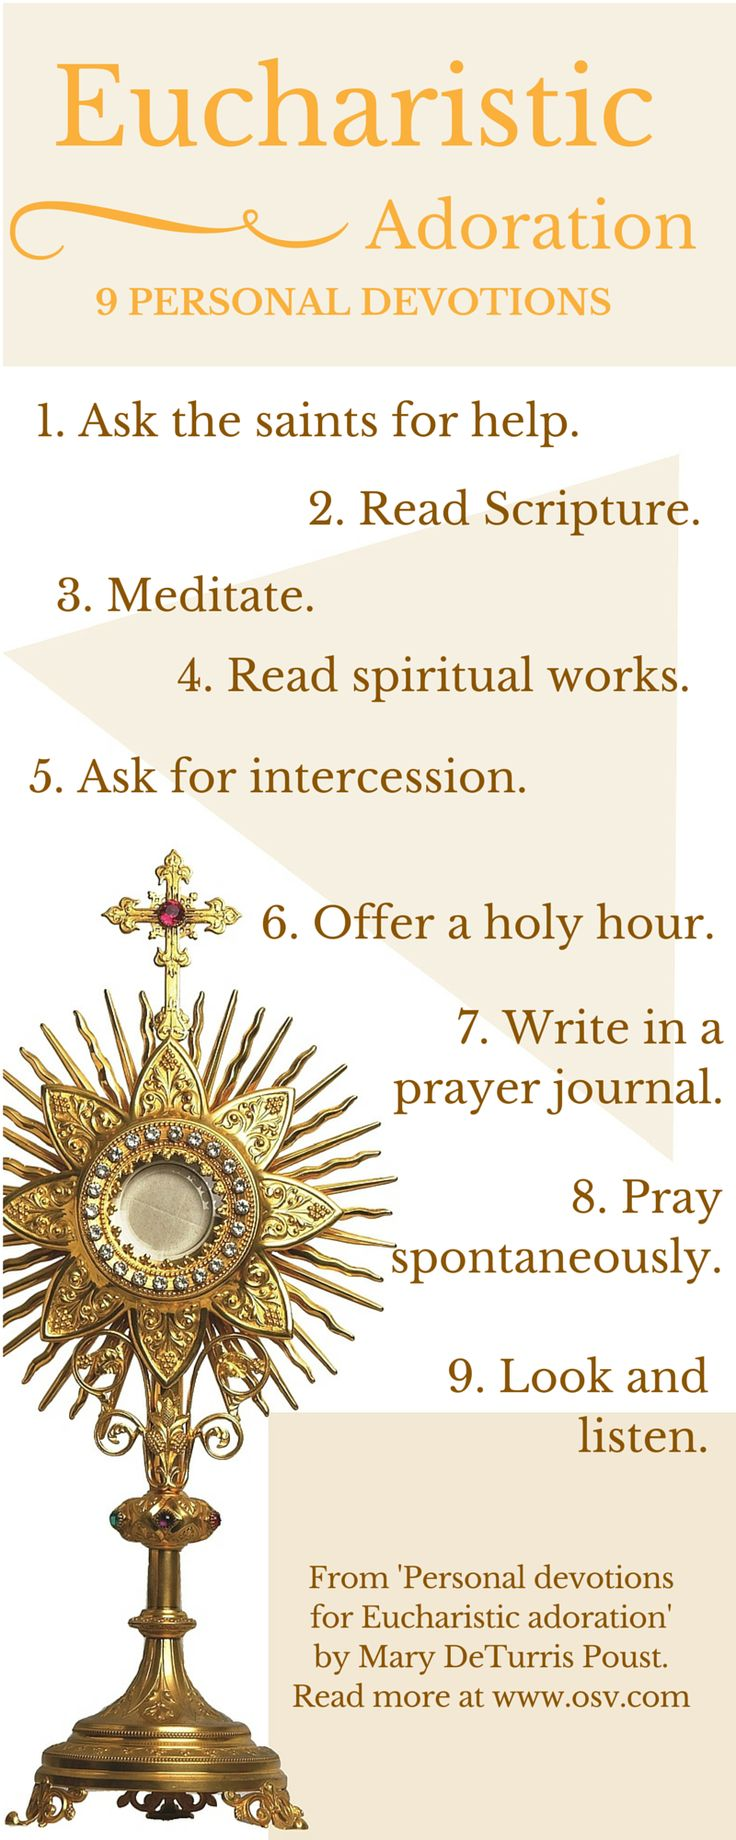 8 best prayers images on pinterest catholic roman catholic and here are some ways you can open your heart to our lord the next time you fandeluxe Choice Image